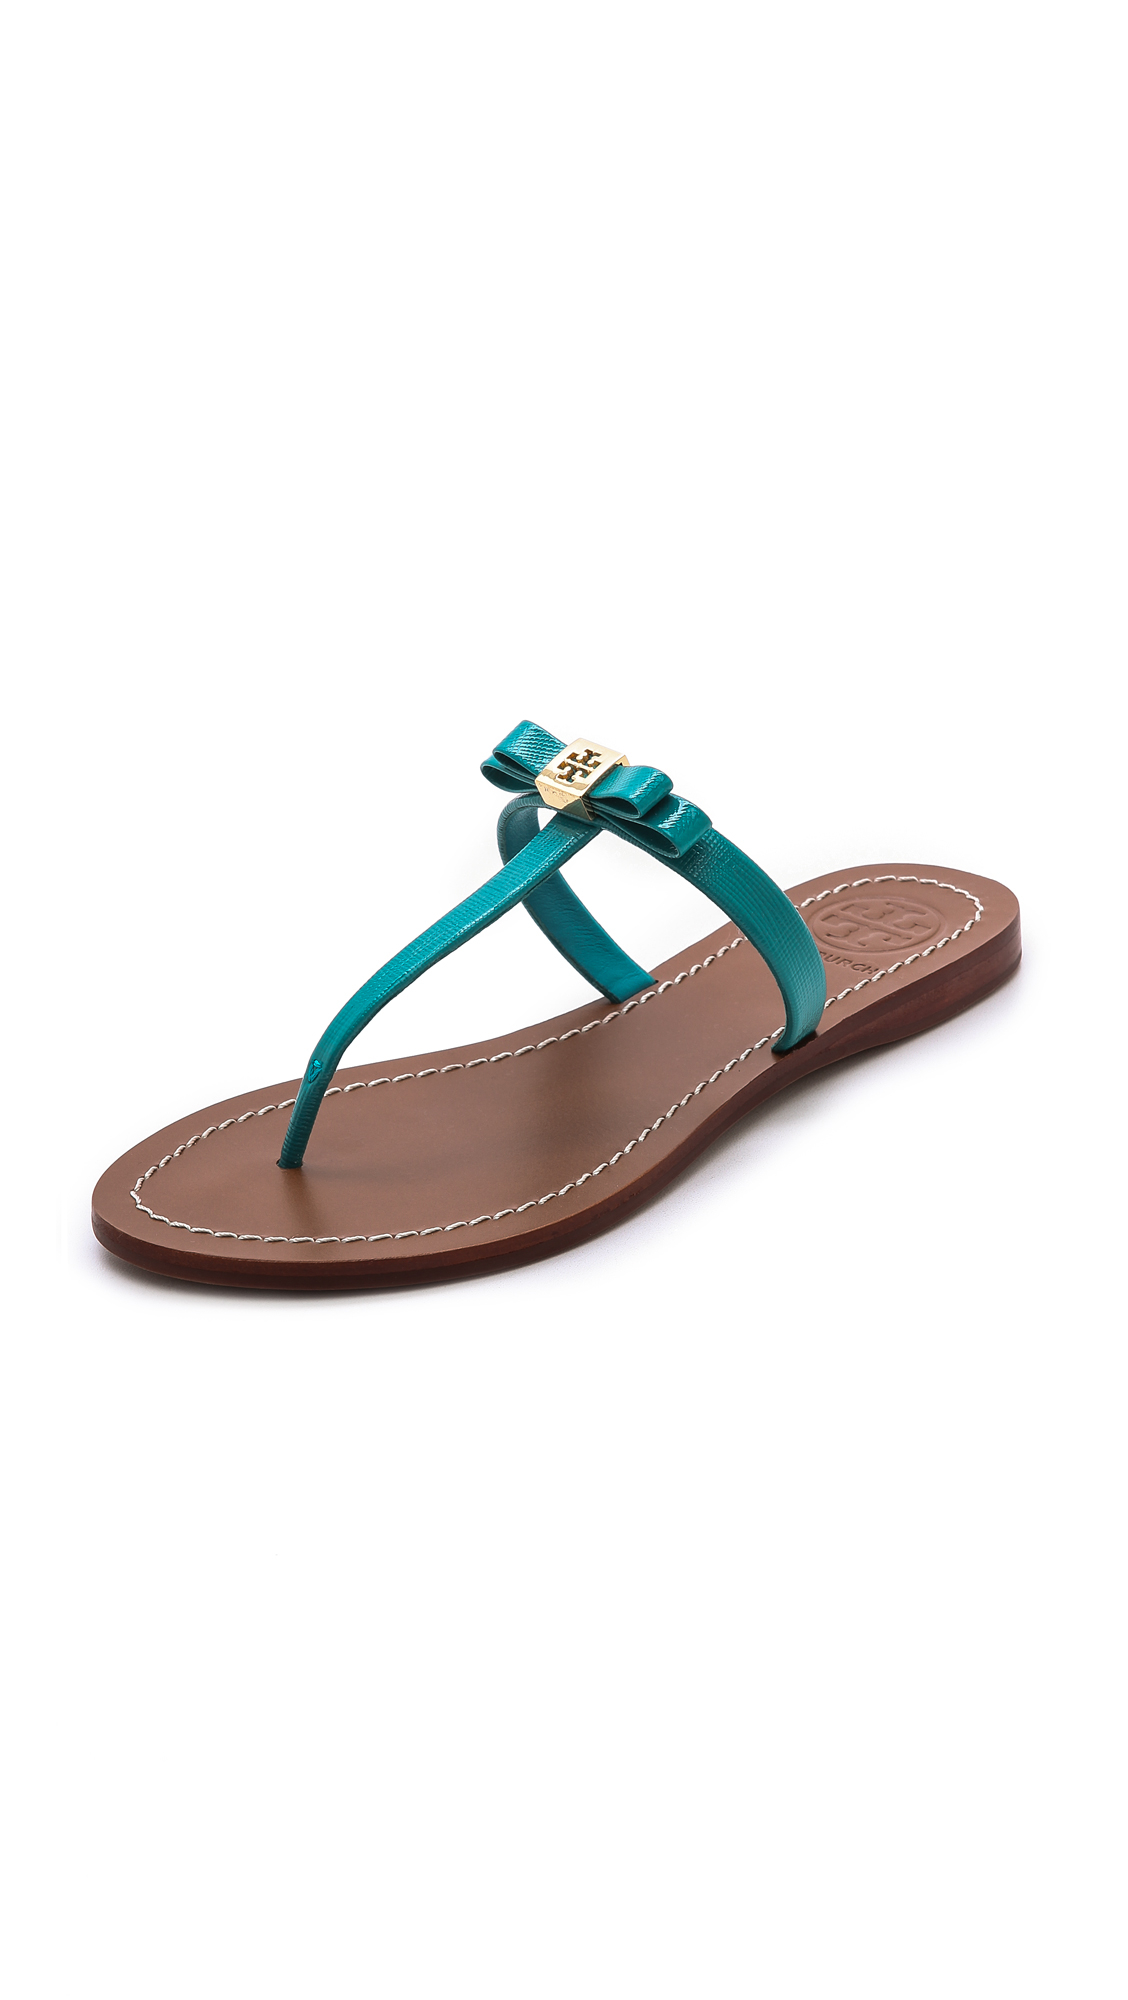 Lyst Tory Burch Leighanne Sandals In Blue